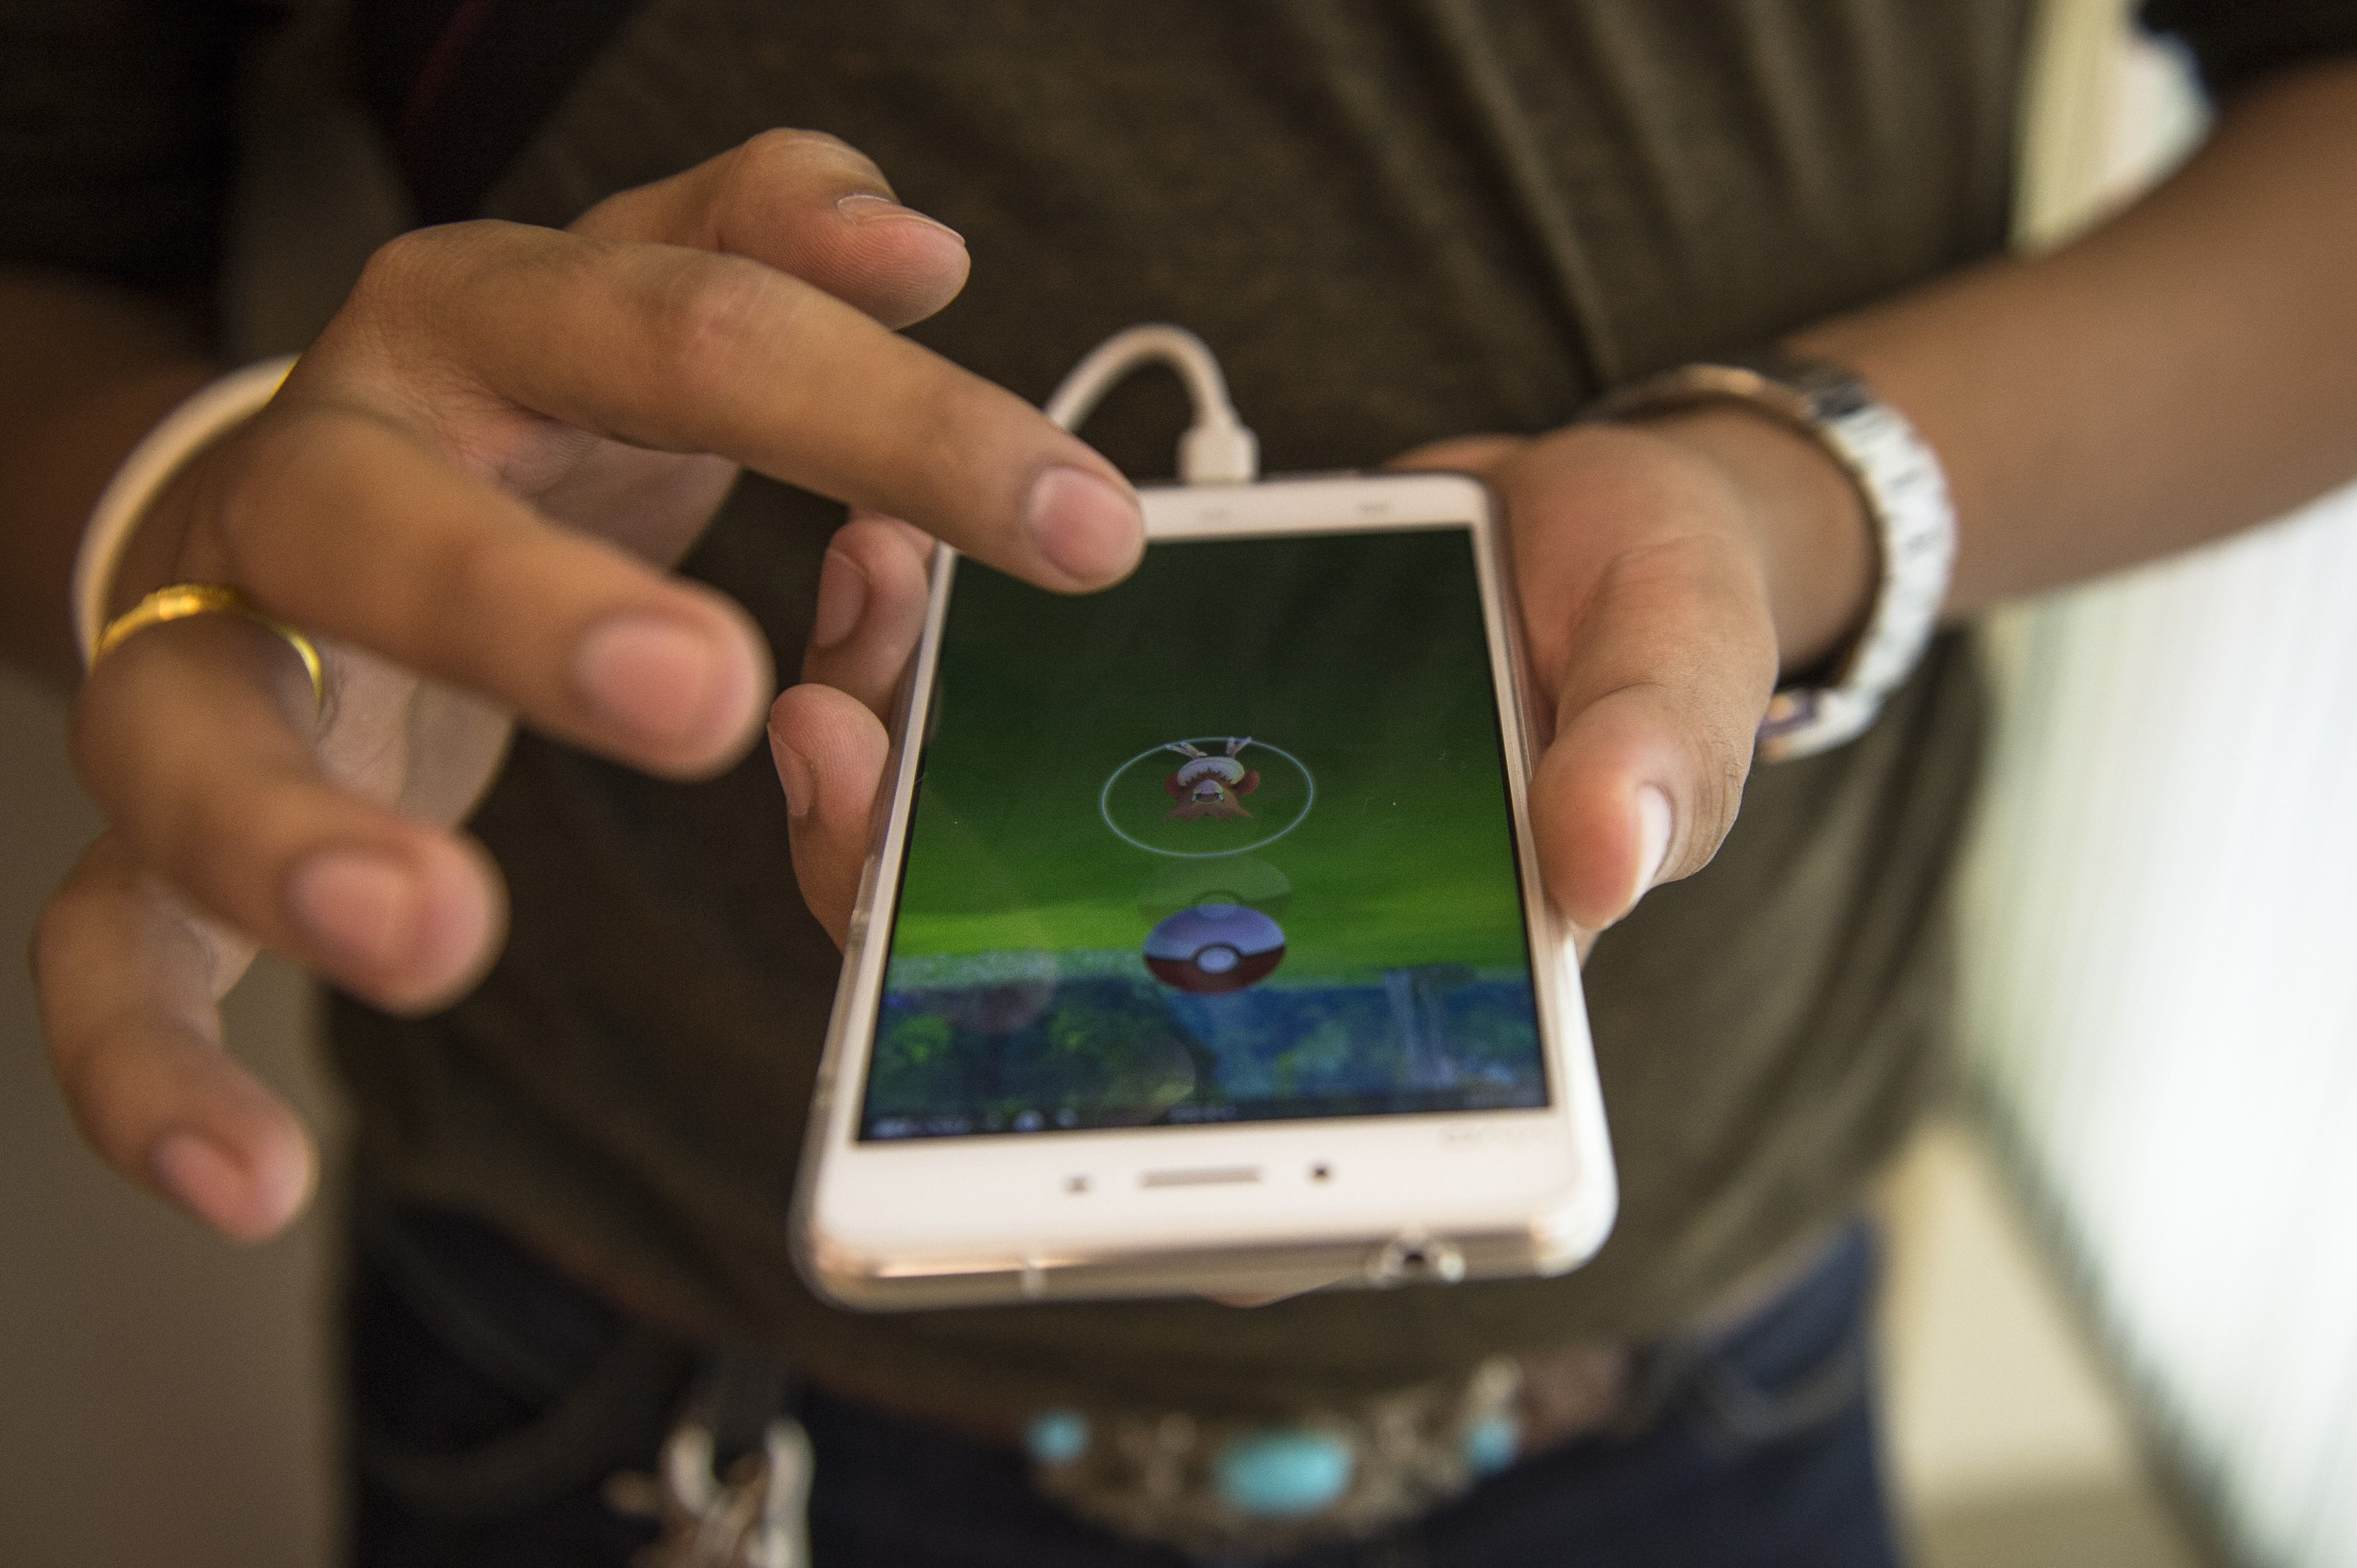 A gamer plays Pokemon Go on his mobile phone in a shopping mall in Bangkok on August 9, 2016. Pokemon Go's debut in Thailand has alarmed the country's generals, prompting the kingdom's junta chief to warn youngsters against playing too much and the army to ban the game from barracks. The mobile app was made available in Thailand on August 6, delighting many in a country where Japanese subcultures have a significant following.   / AFP / LILLIAN SUWANRUMPHA        (Photo credit should read LILLIAN SUWANRUMPHA/AFP/Getty Images)